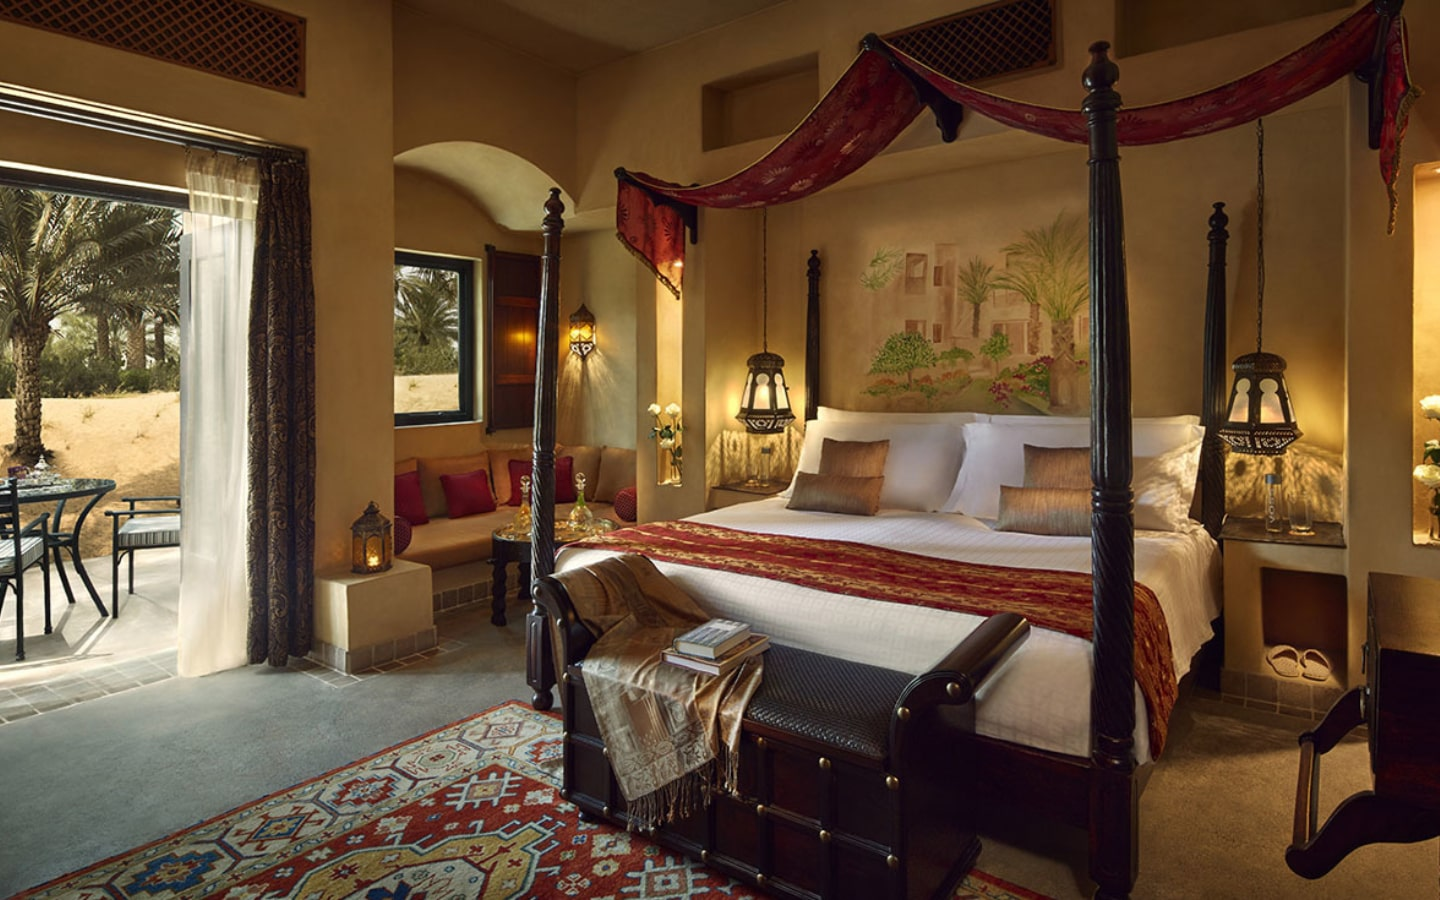 View of the rooms in Bab Al Shams Resort, which has Eid Al Adha staycation deals